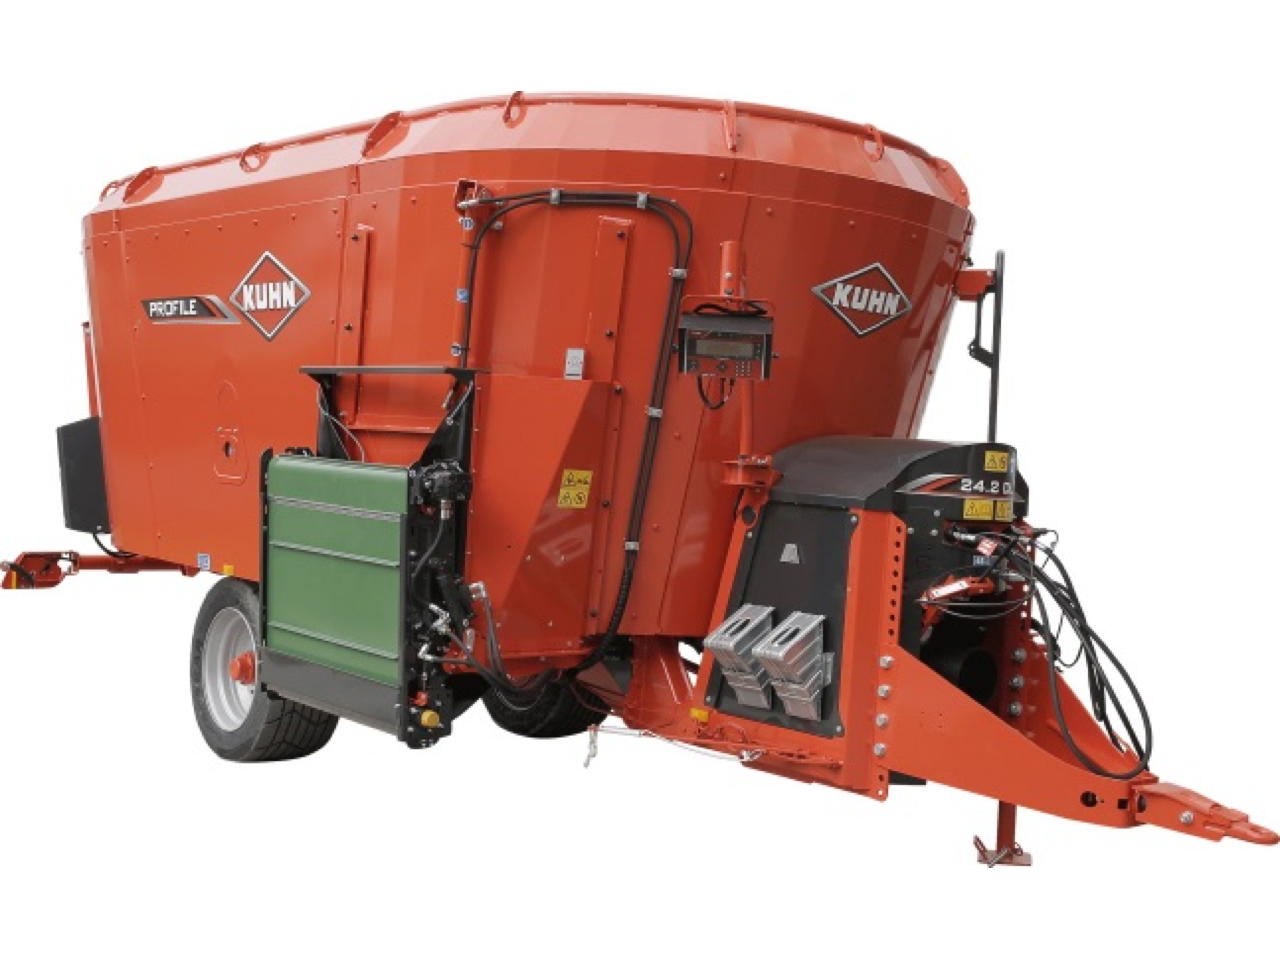 Kuhn Profile 2 DL Profile 26.2 DL